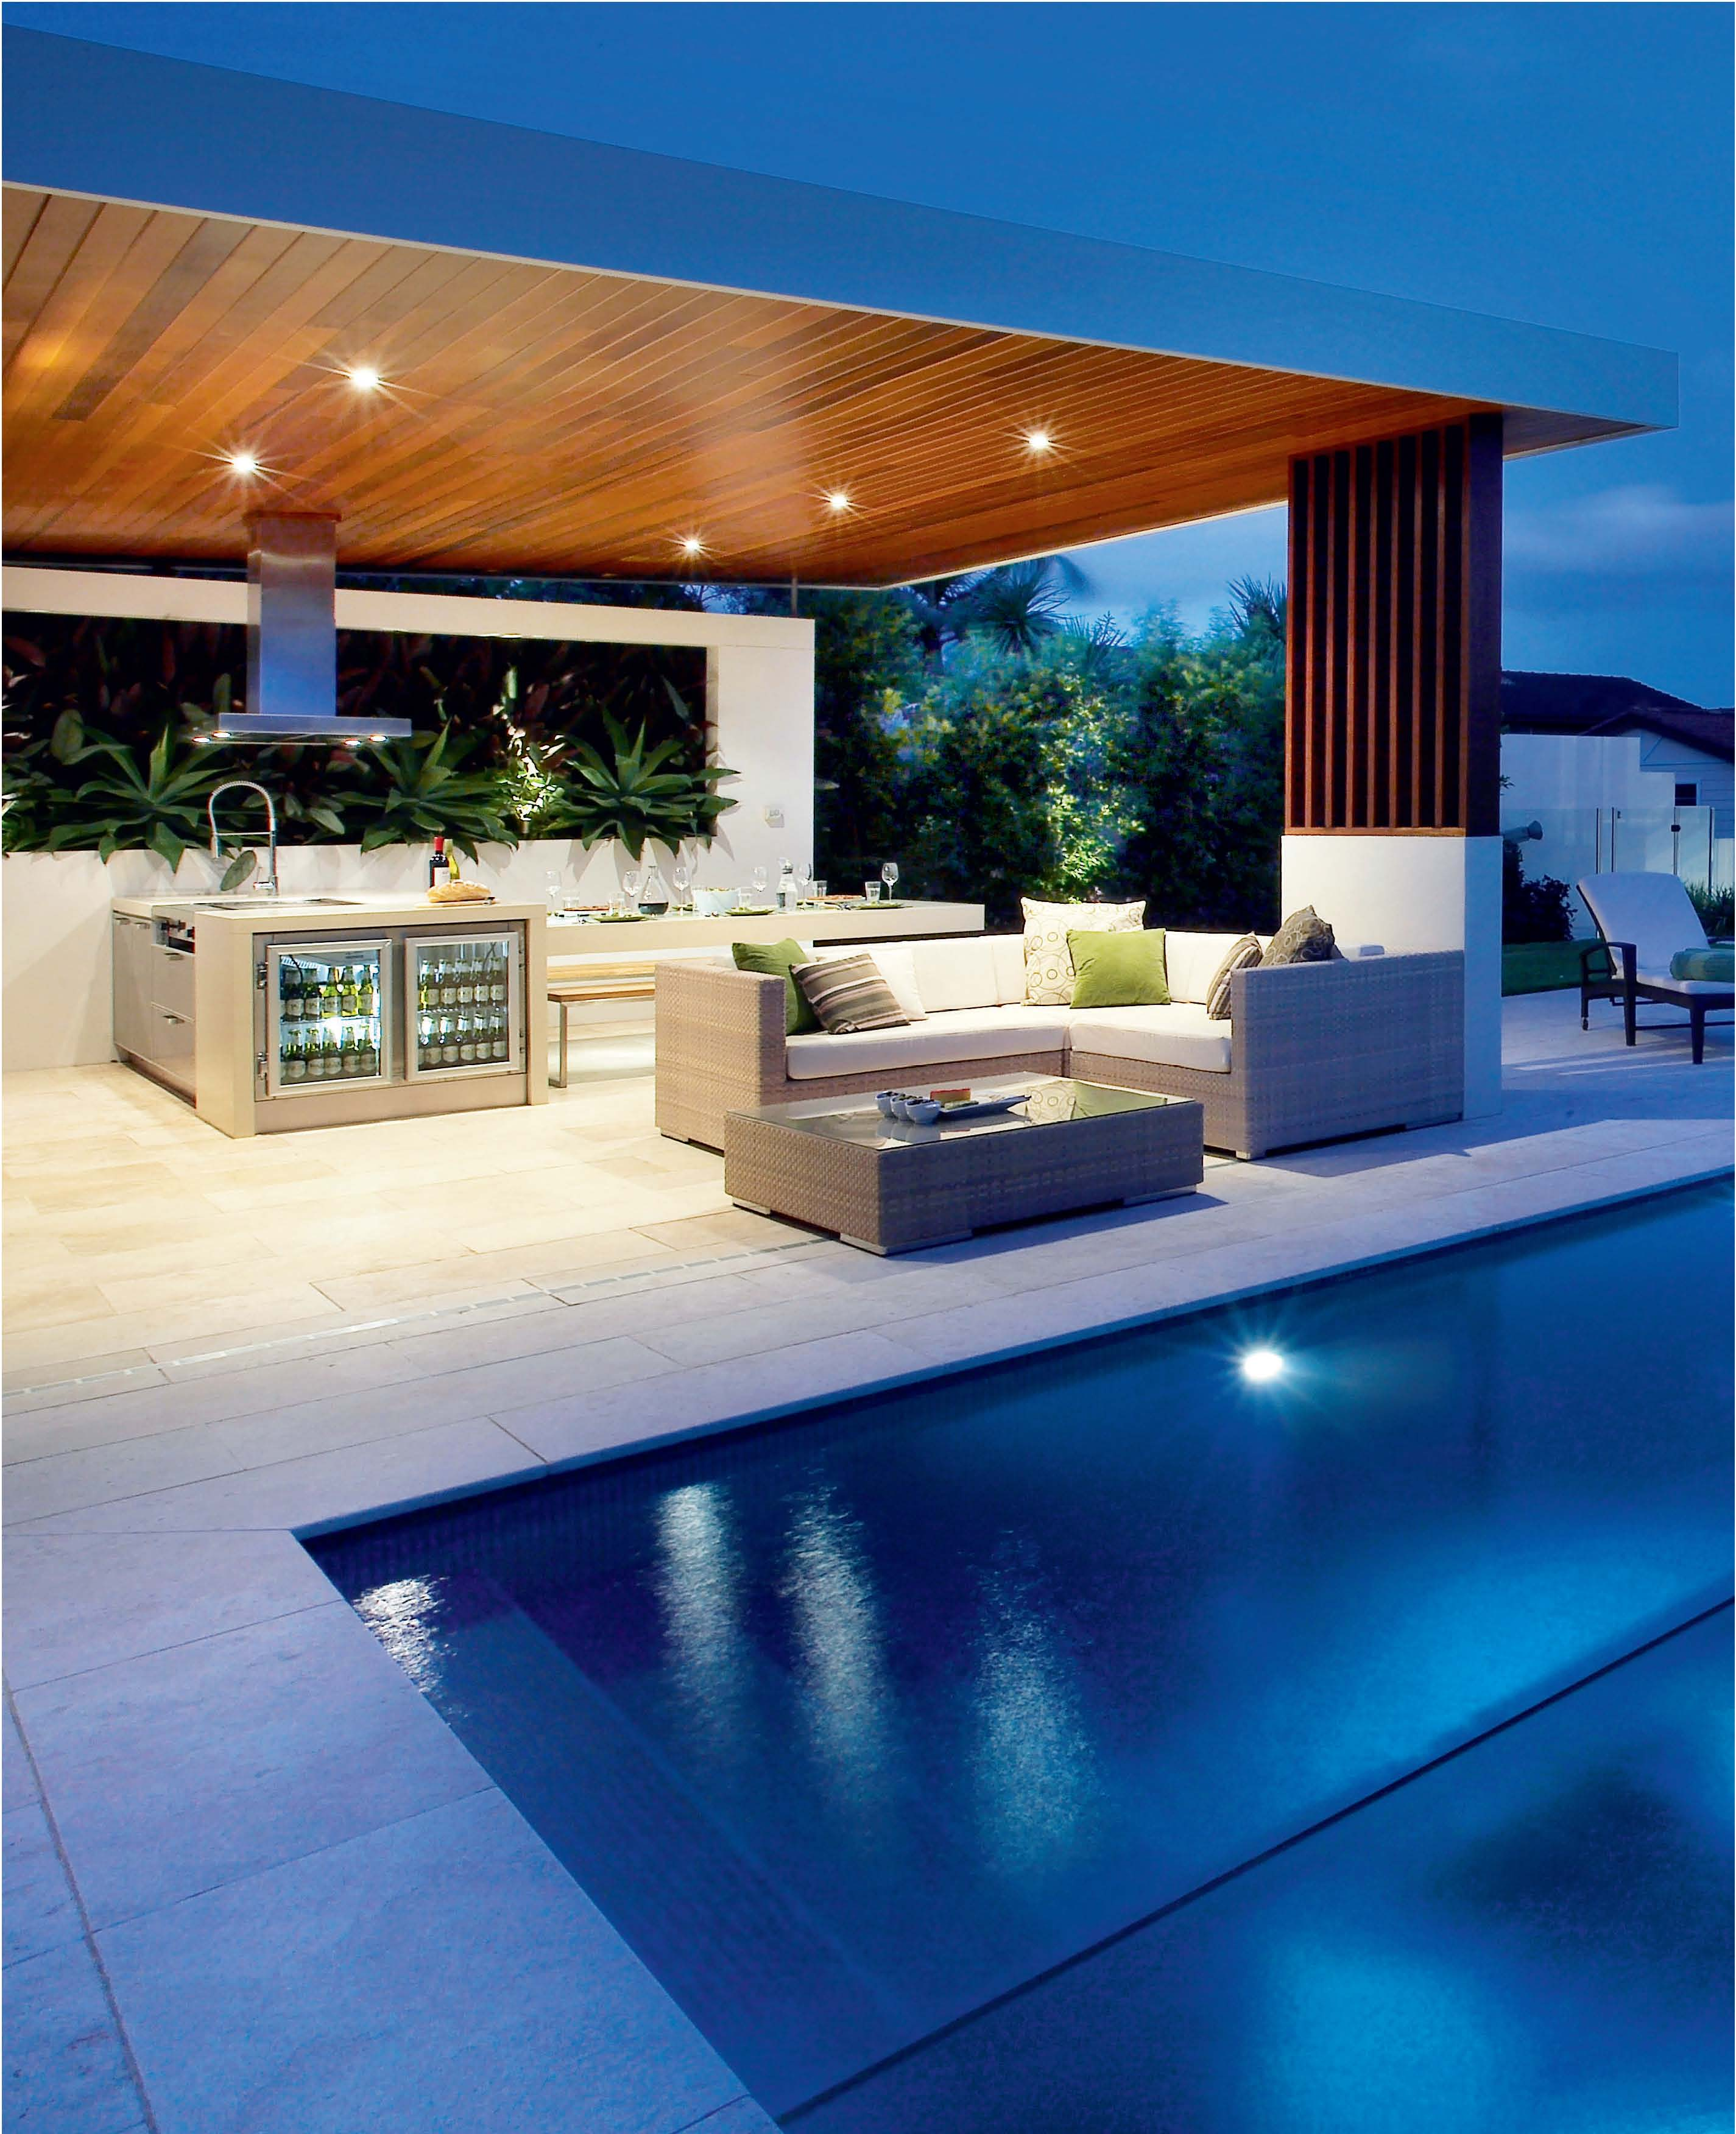 35 Outdoor Design For Your Home - The WoW Style on Outdoor Living Spa id=82970